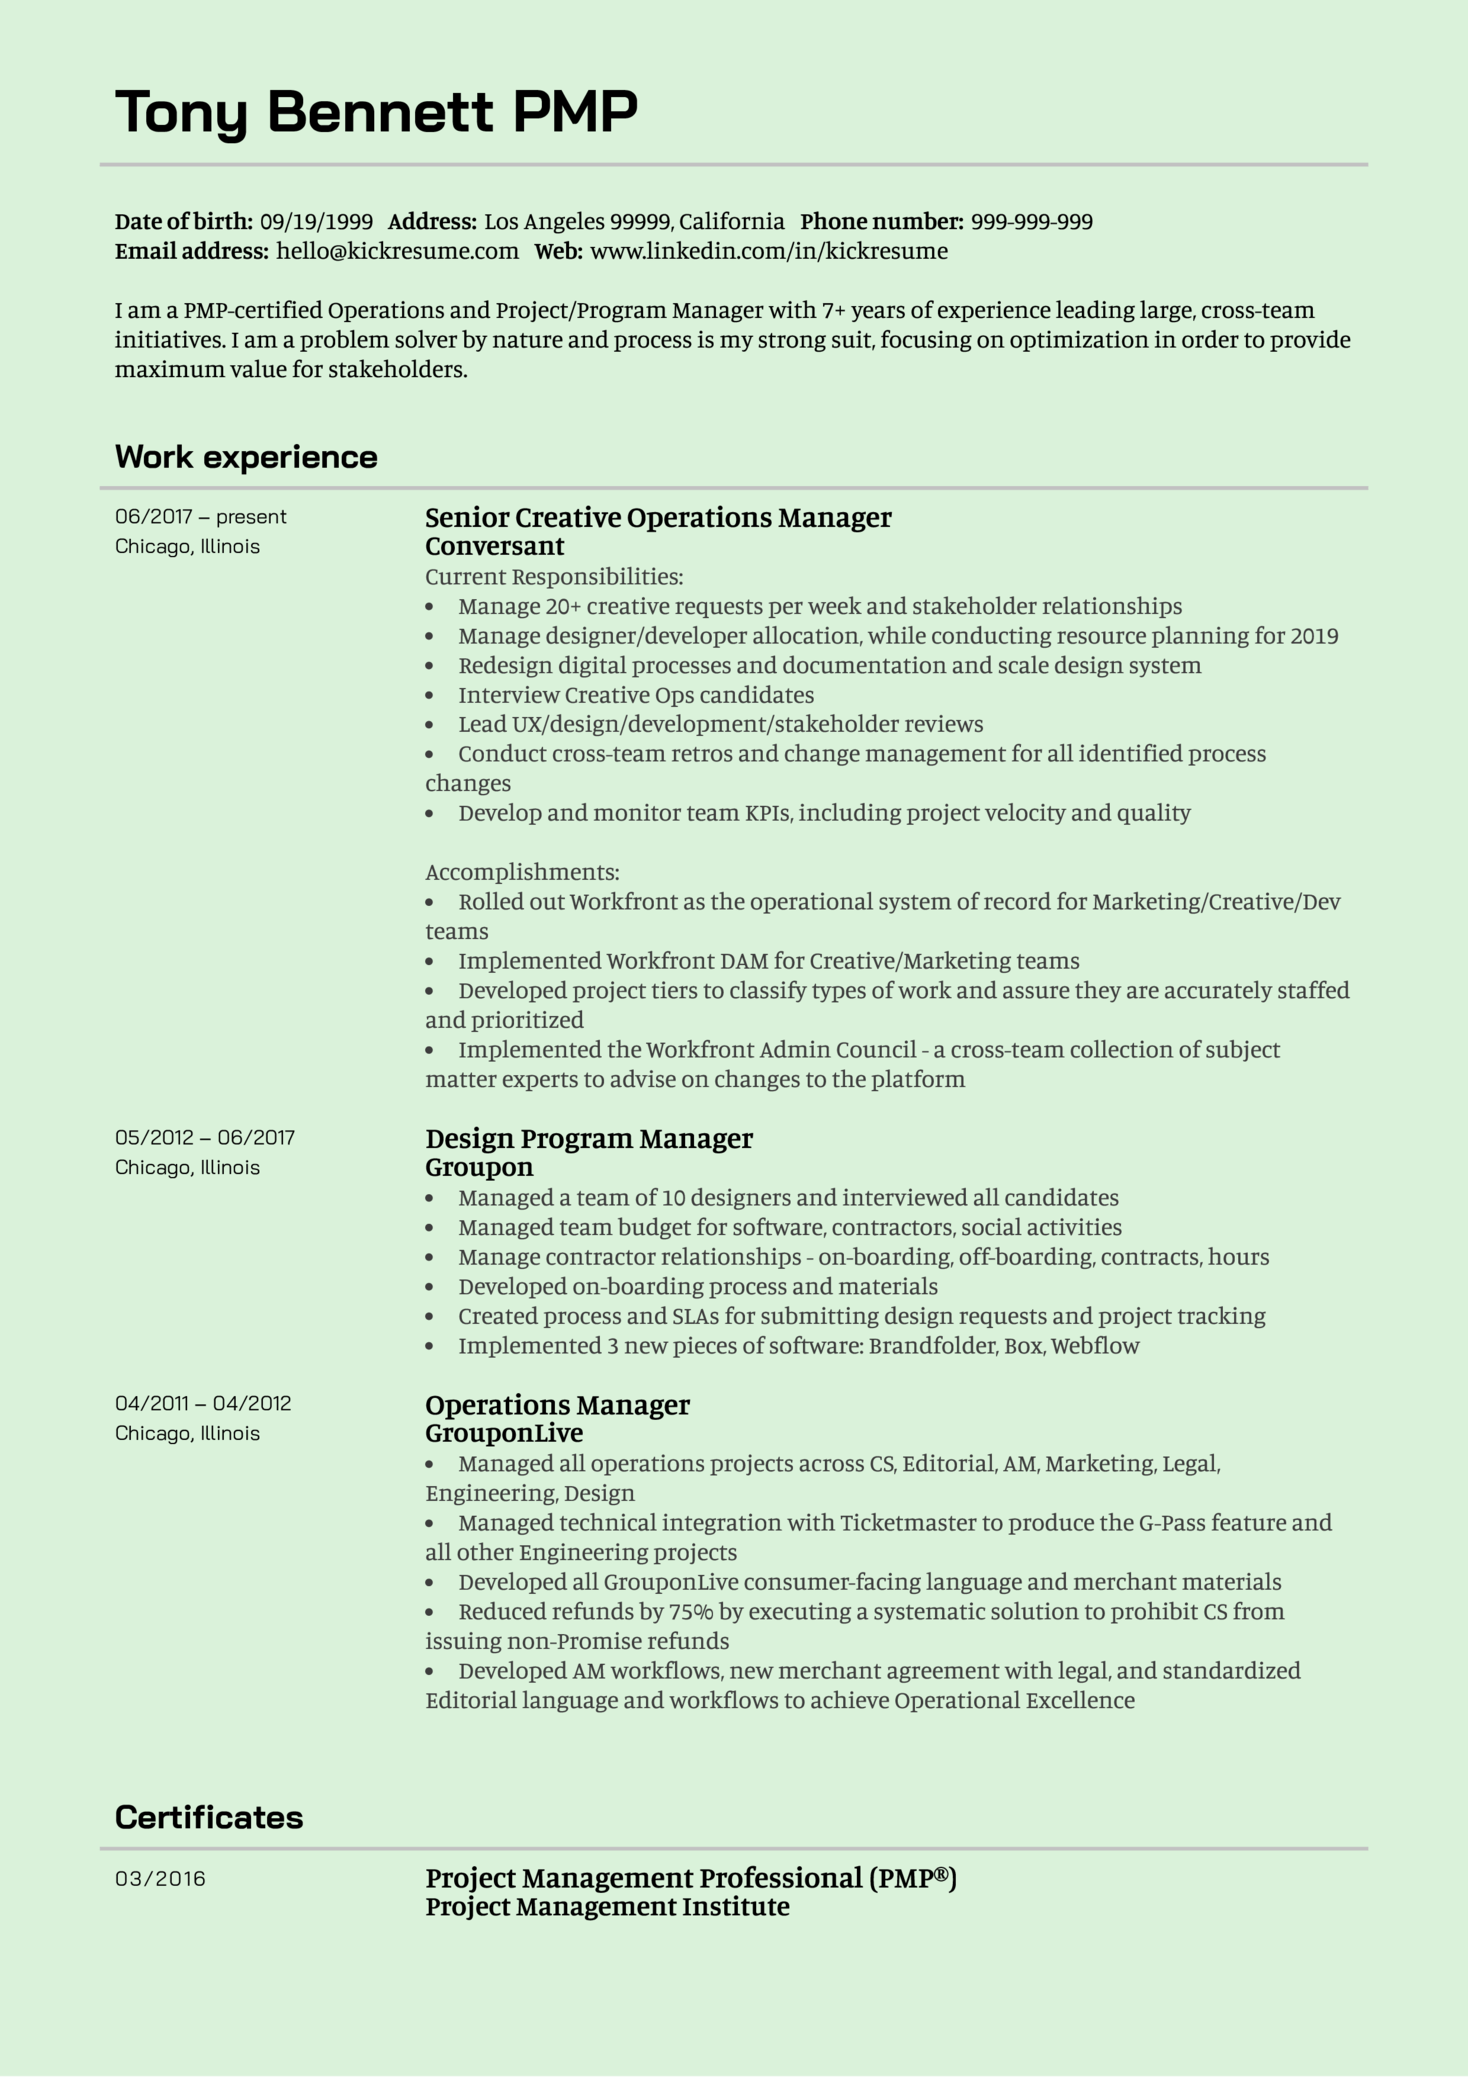 Senior Creative Operations Manager CV Example (Part 1)